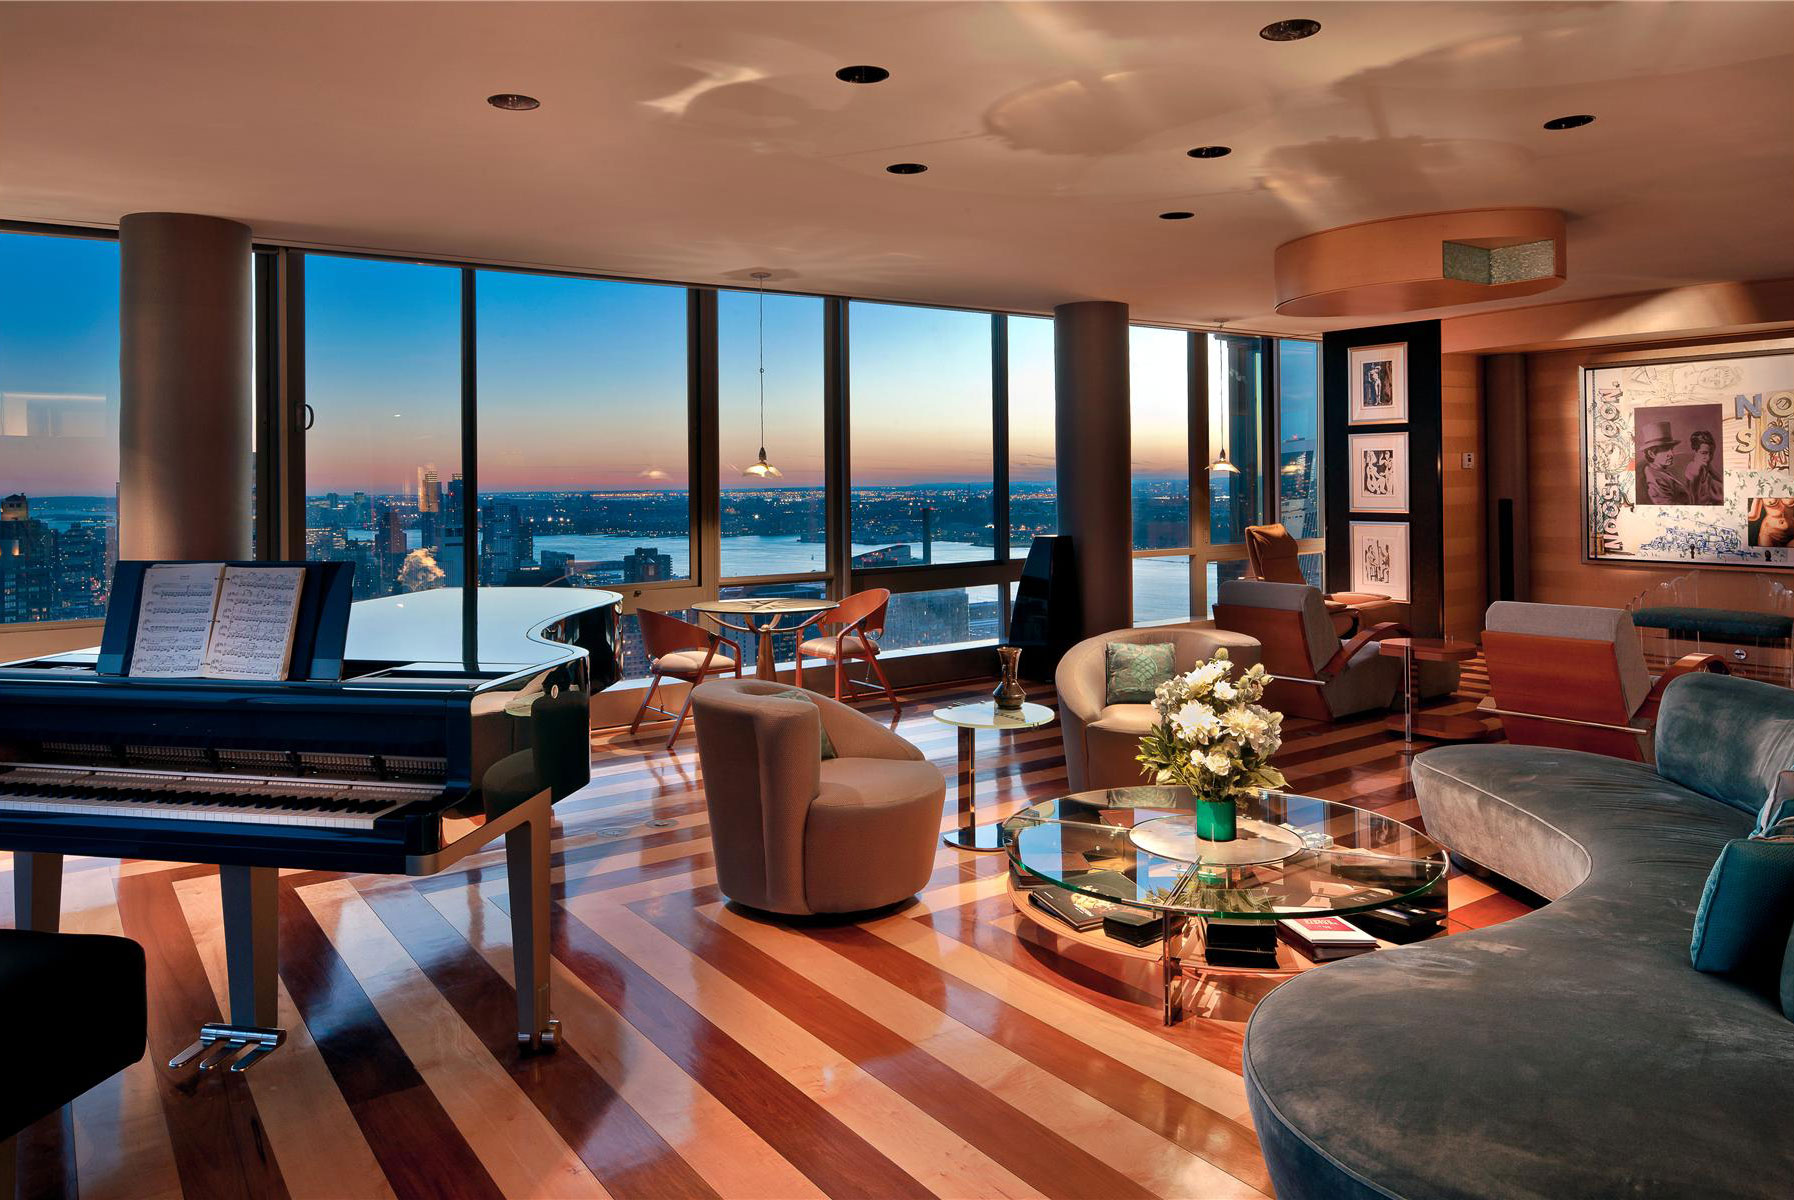 The gartner penthouse for sale in new york city for New york city luxury apartments